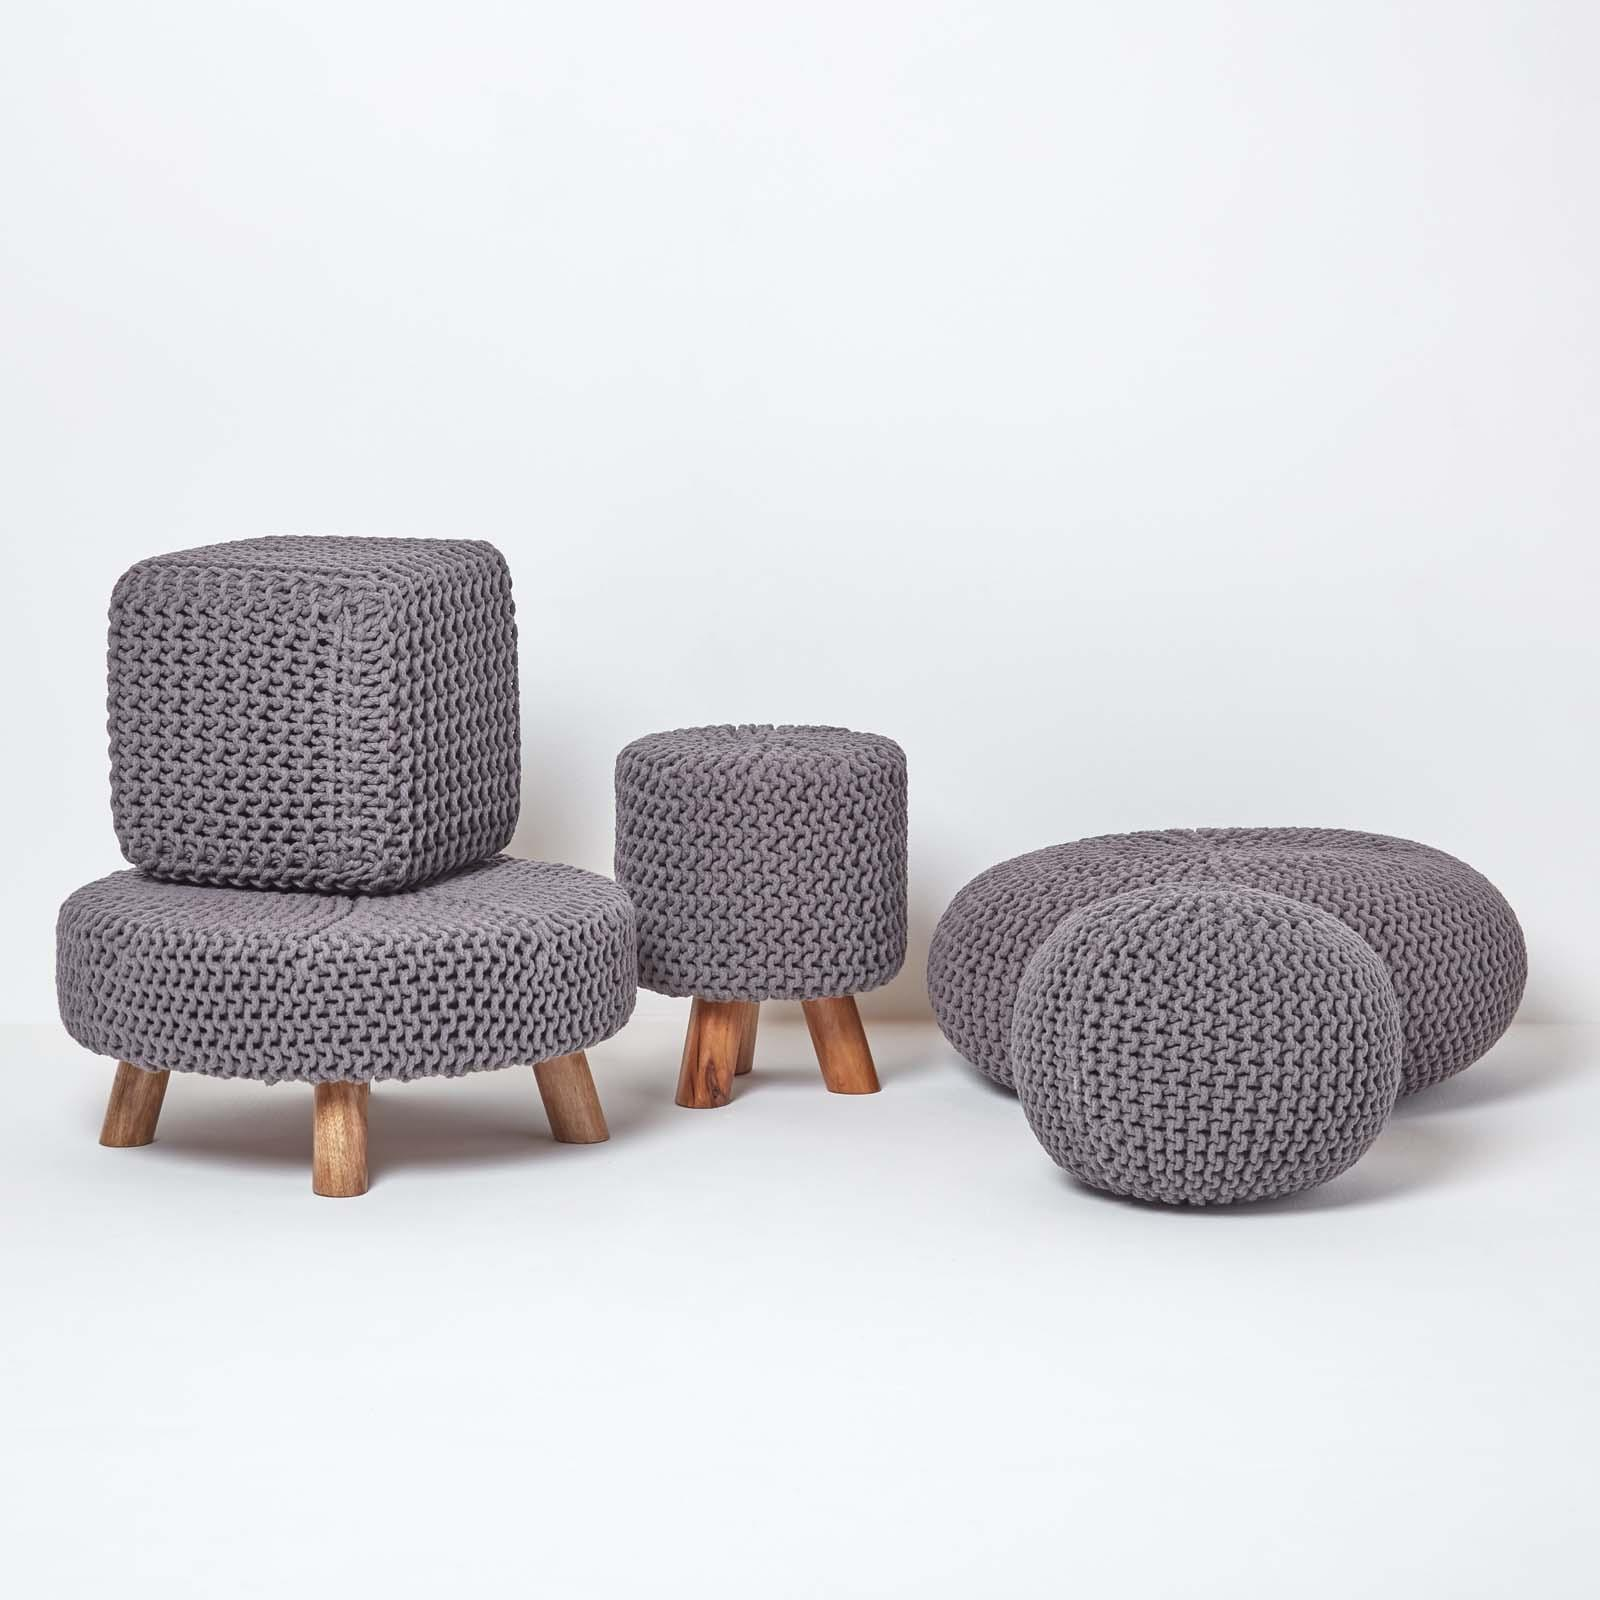 Hand-Knitted-100-Cotton-Pouffes-Round-Sphere-Or-Cube-Square-Chunky-Footstools thumbnail 55